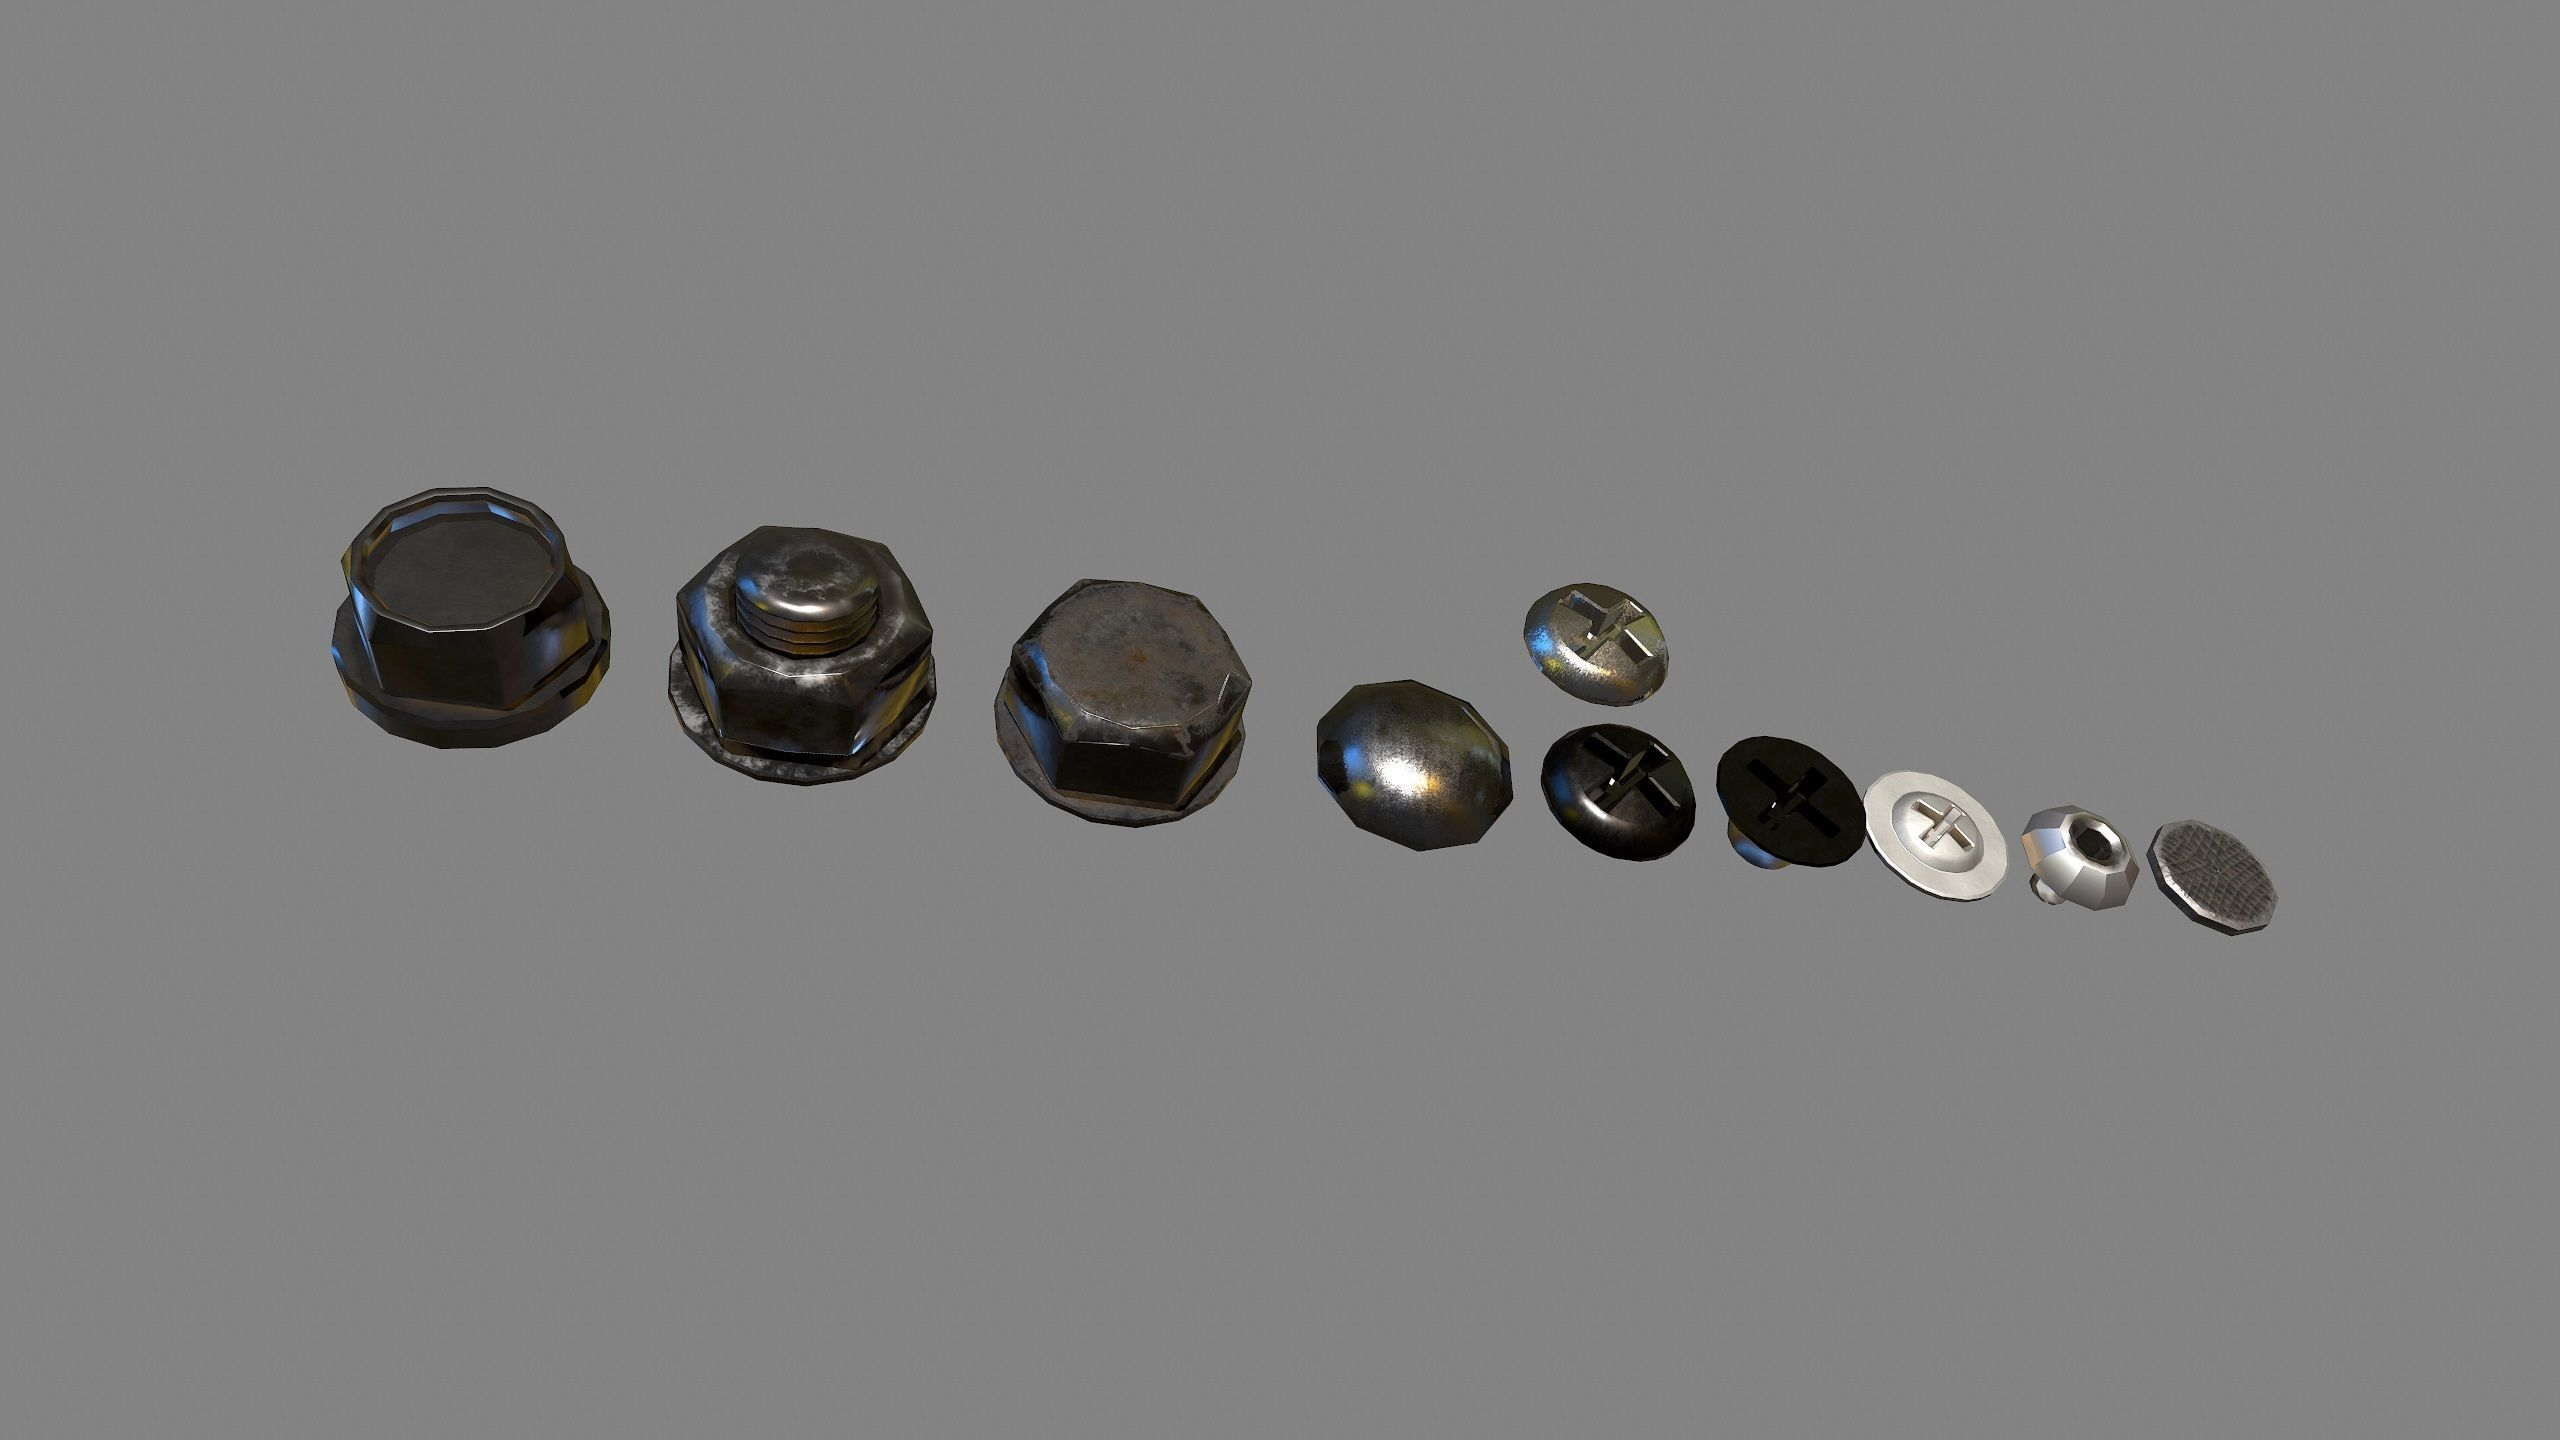 3d Model Bolts Nuts And Screws Vr Ar Low Poly Max Obj